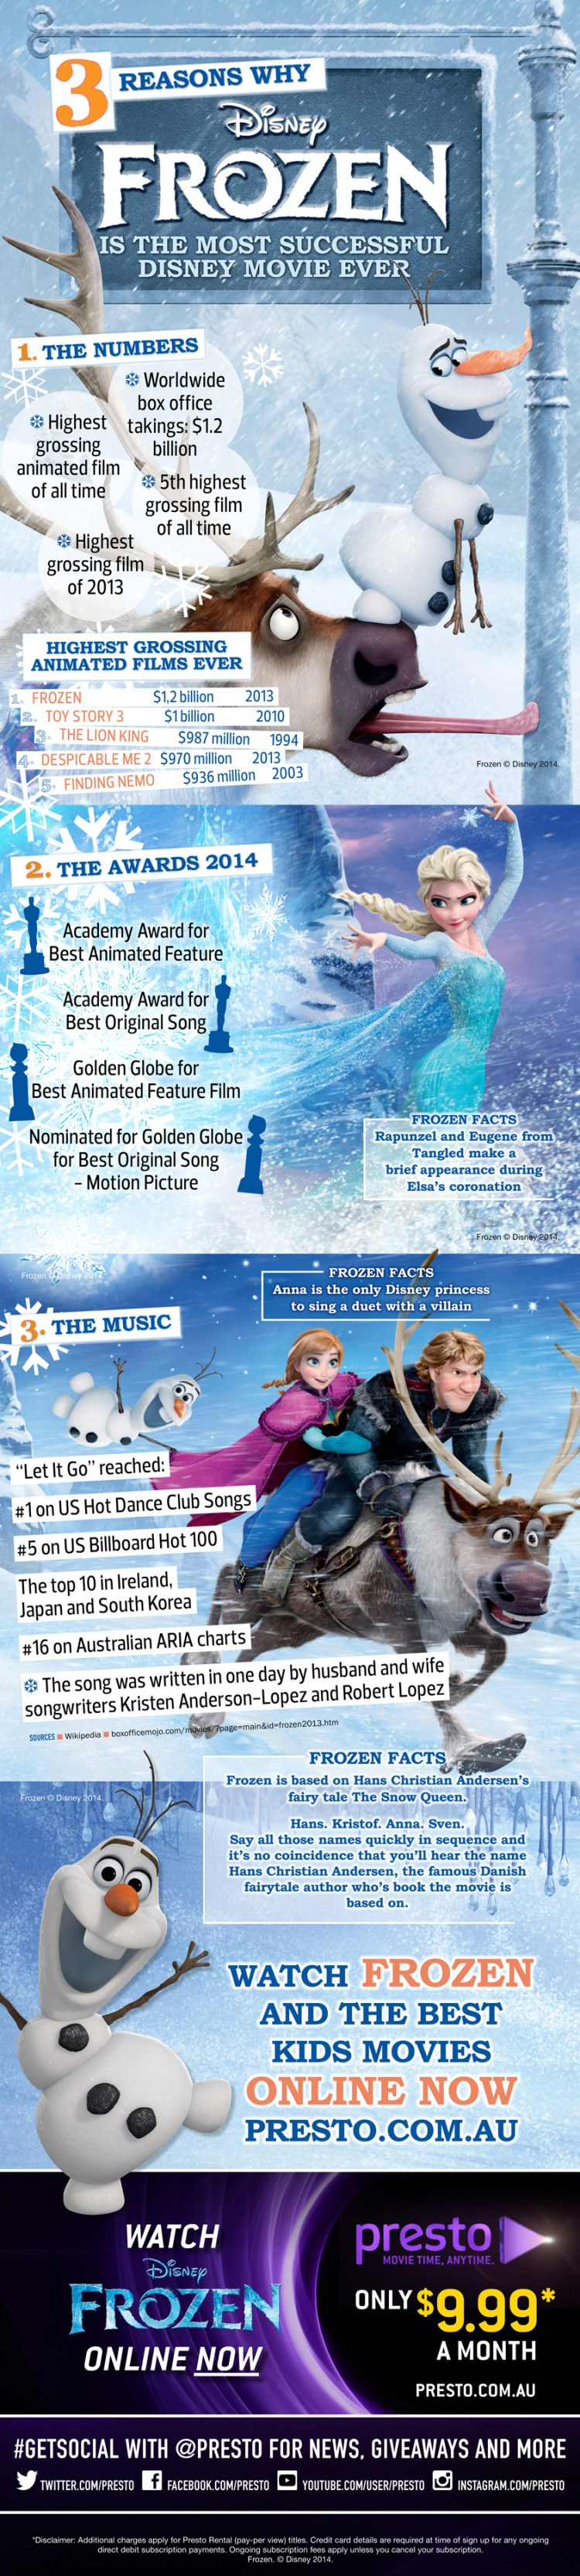 Why Frozen is the Most Successful Disney Movie of All Time